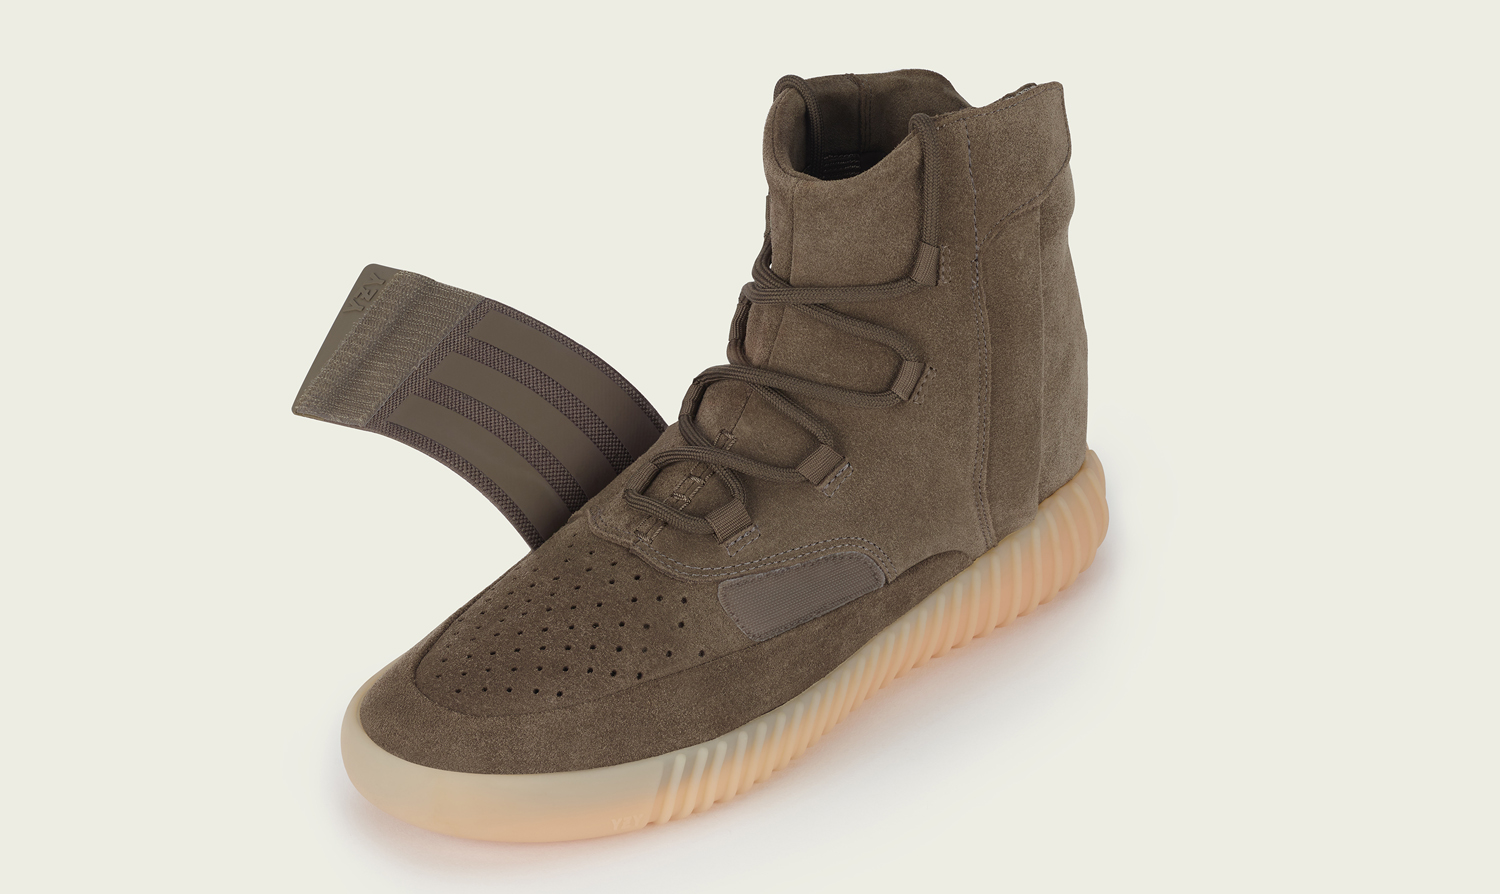 604e0bde559a Image via Adidas Chocolate Yeezy 750 Unstrapped